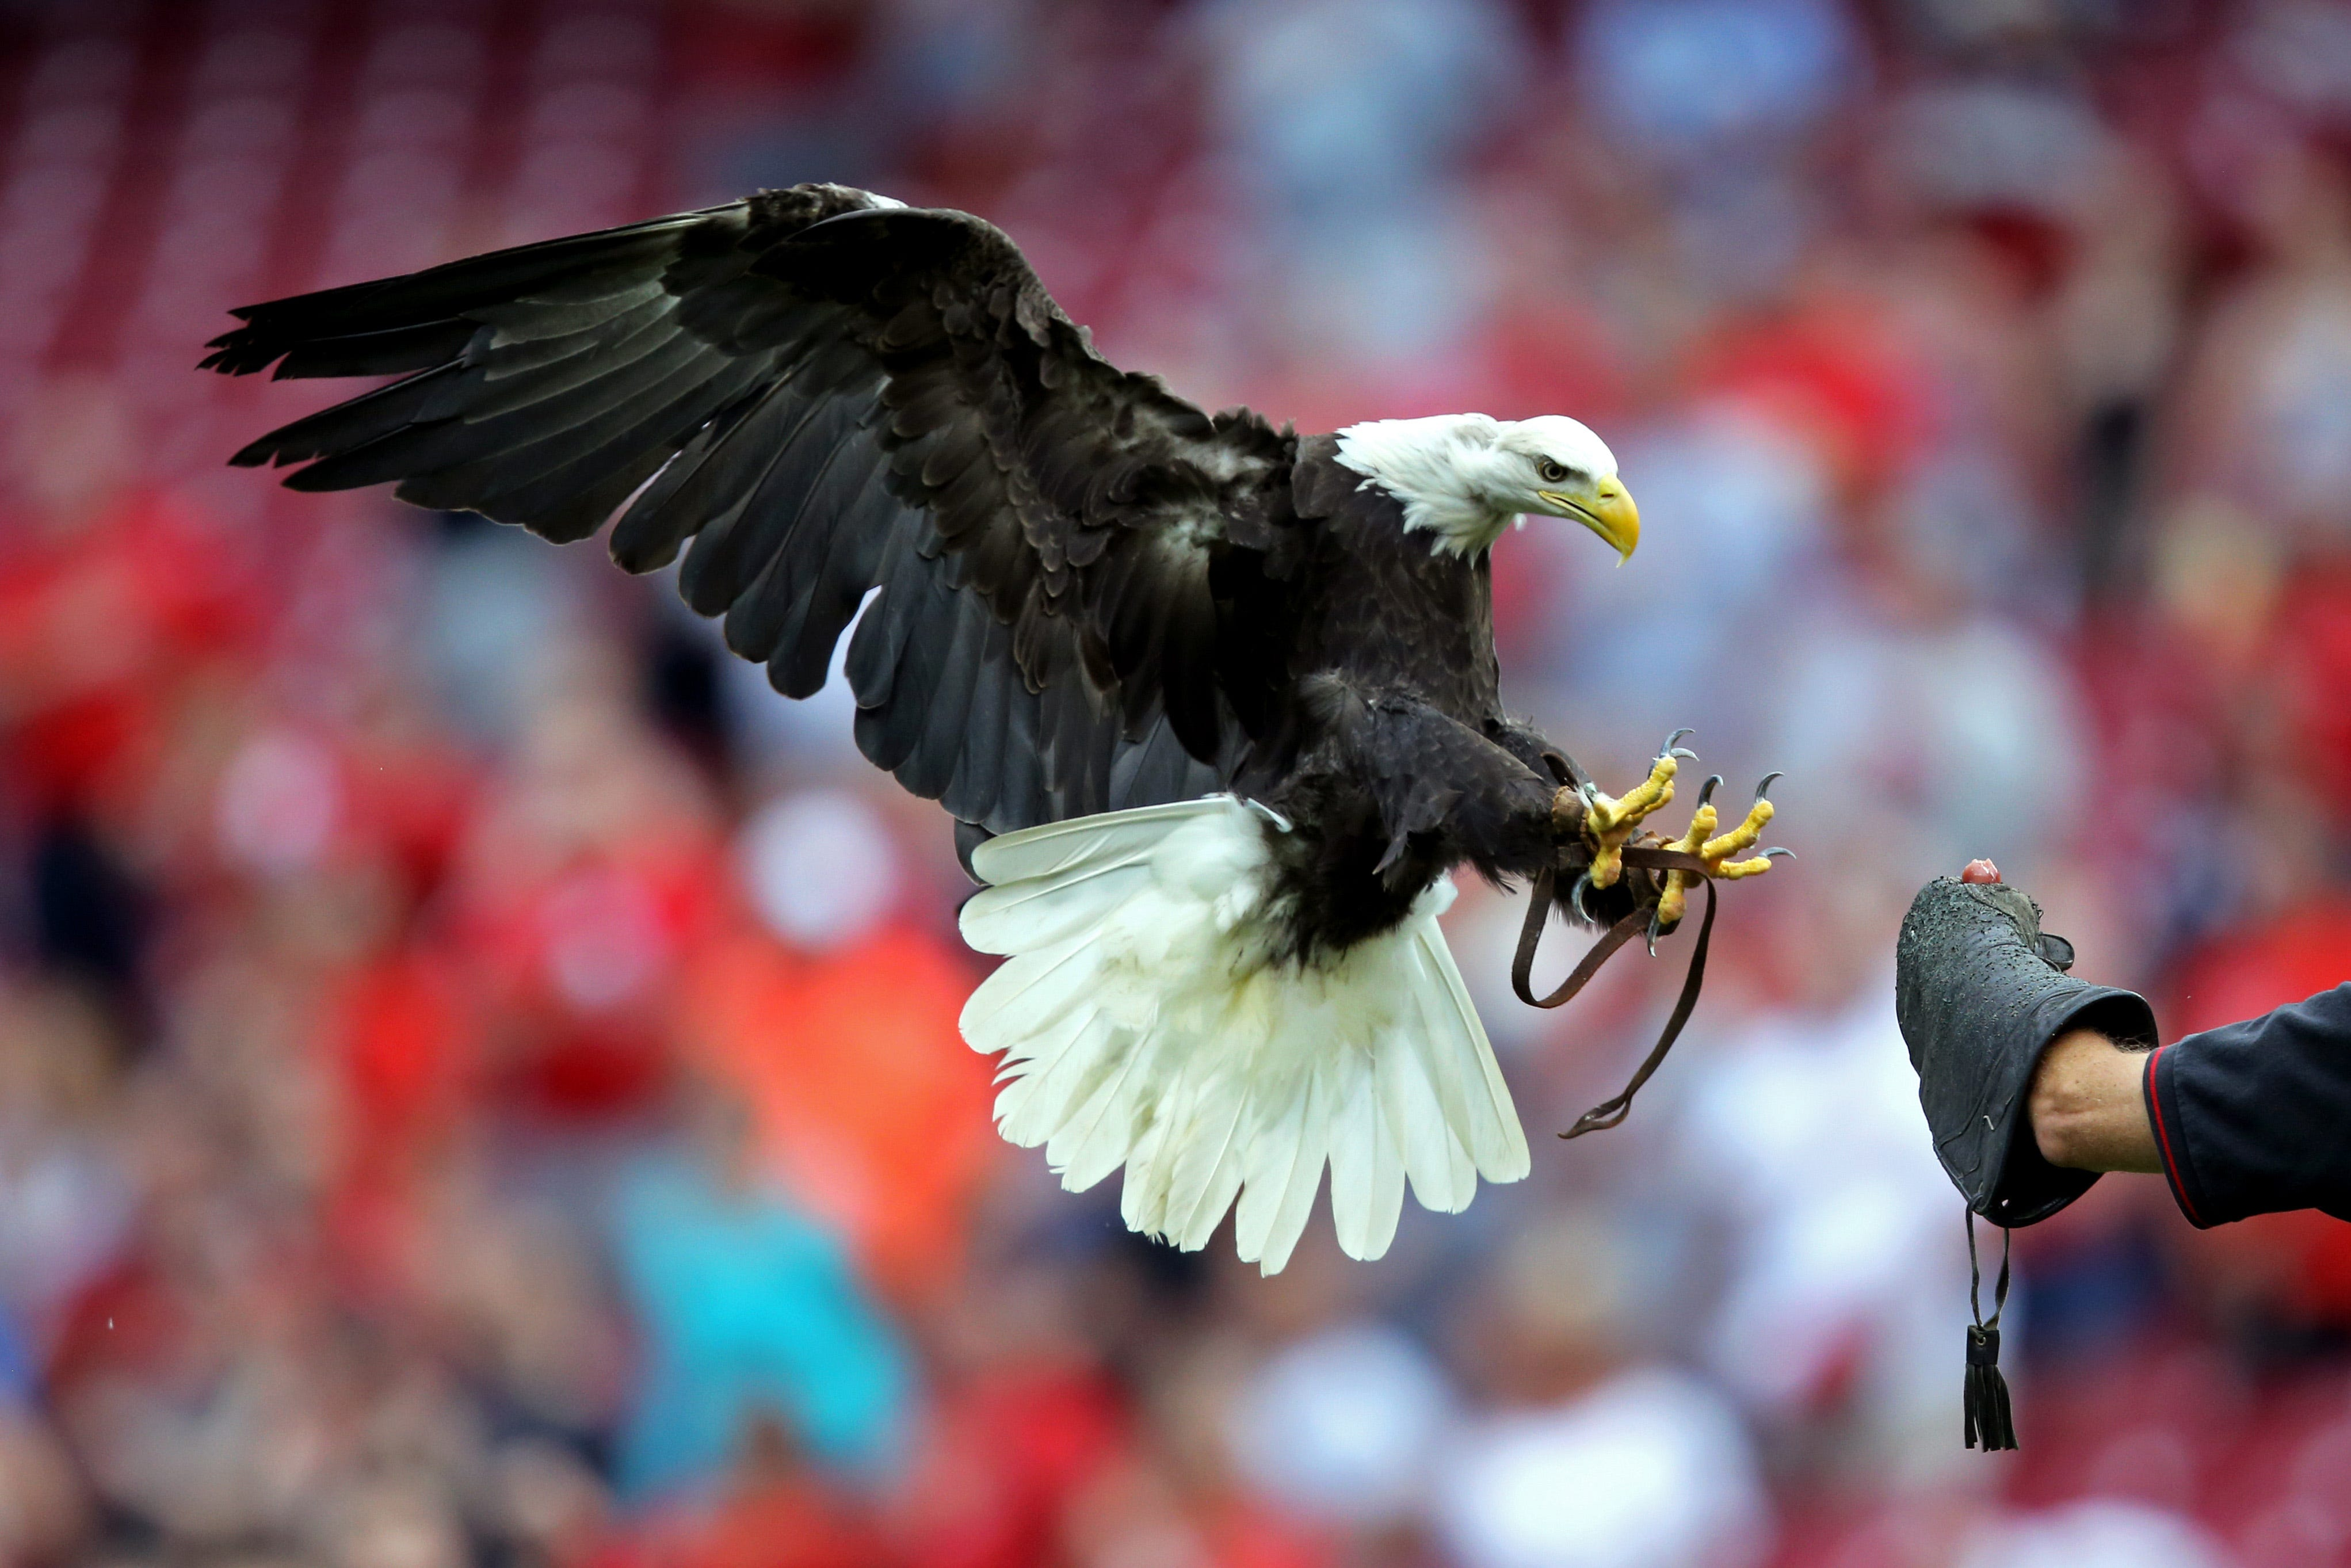 Sam the bald eagle performs during the national anthem prior to the game between the Chicago White Sox and Cincinnati Reds at Great American Ballpark.